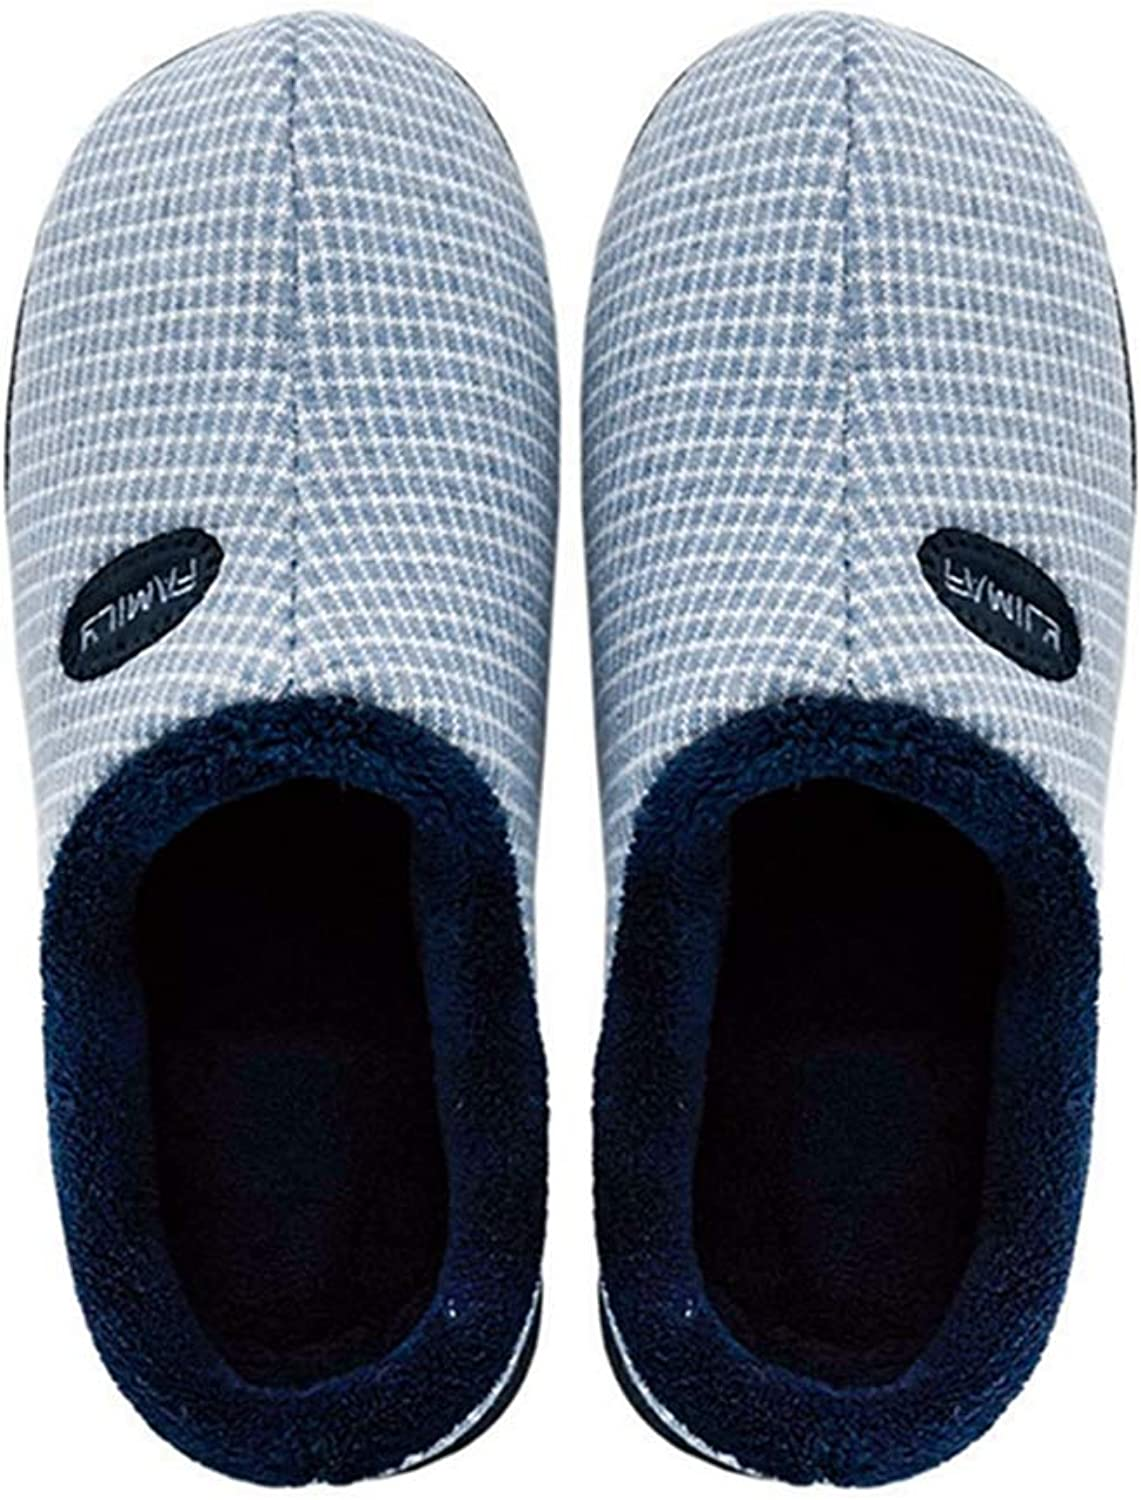 FAY WATERS Women's Couple Comfort Cotton Slippers Plaid Plush Lining Slip-on Mute House shoes for Indoor Use